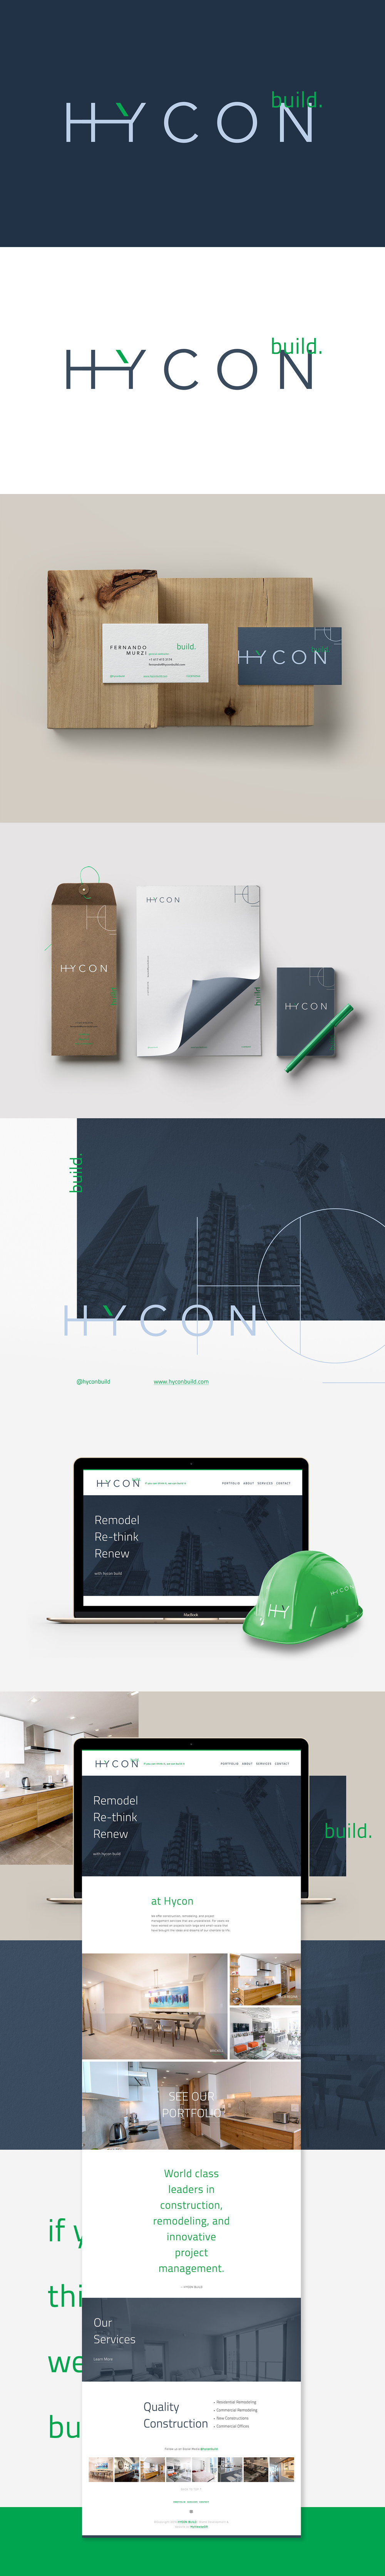 Hycon_Branding_Website.jpg